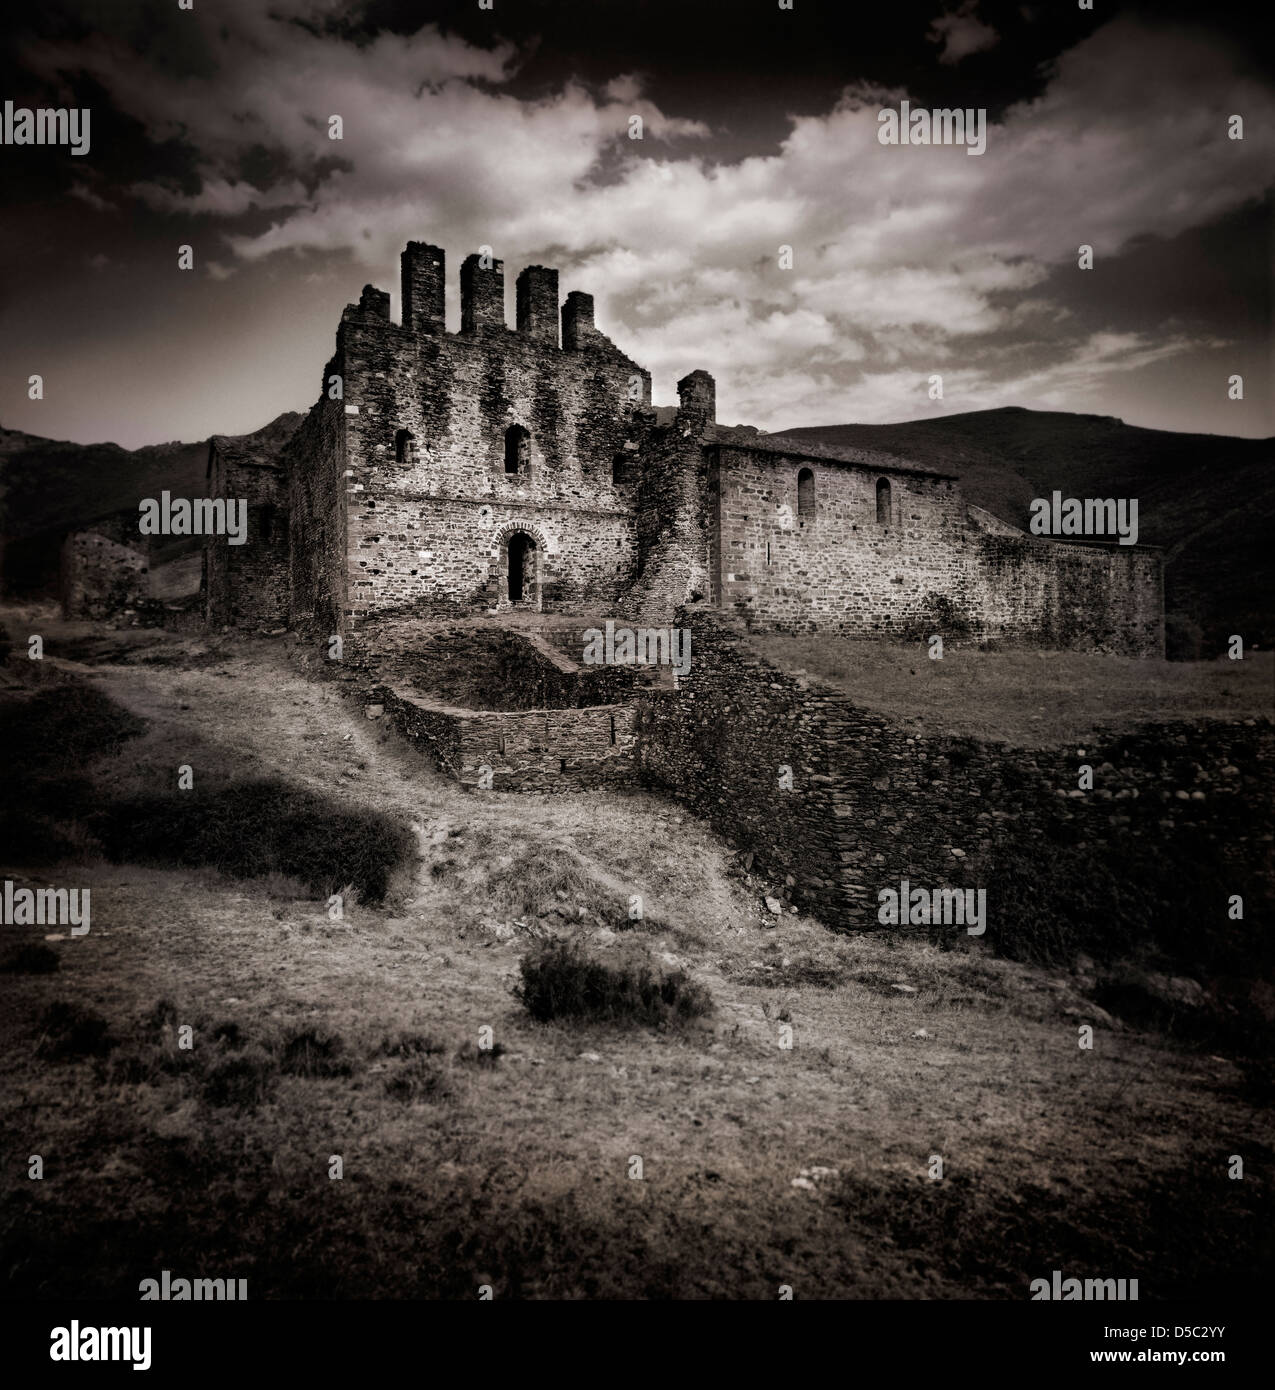 Middle Age Castle Ruins In Dark Environment Stock Photo